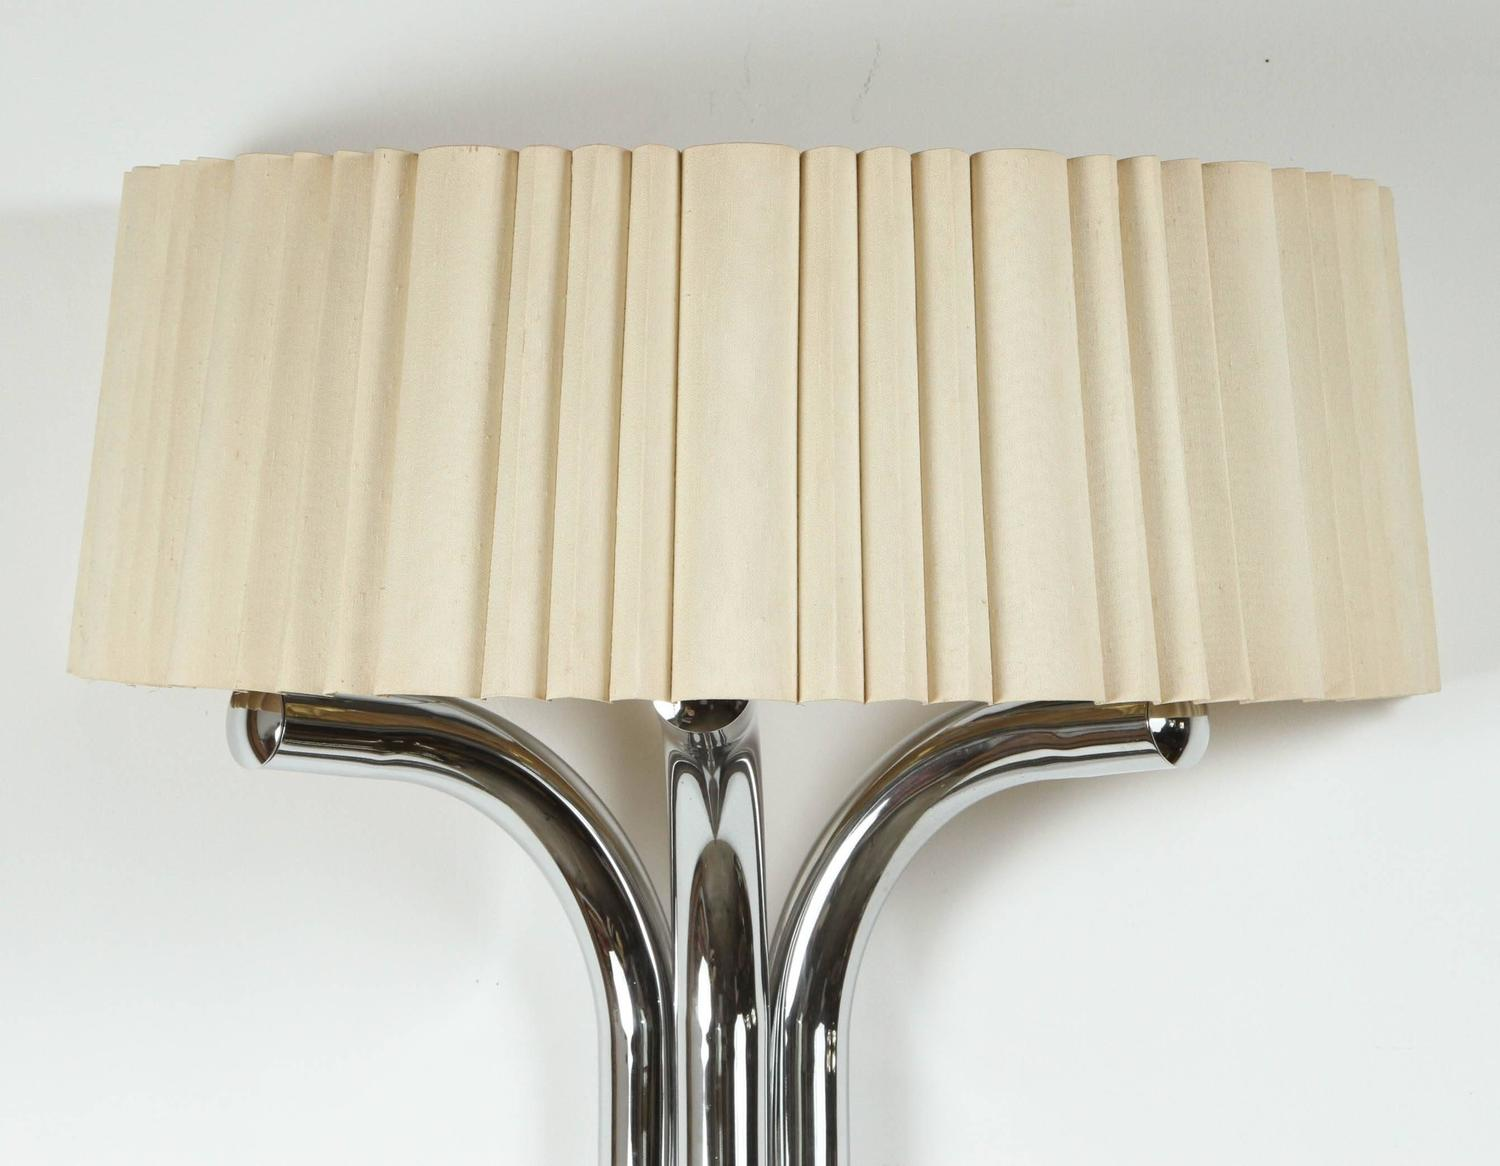 Art Deco Inspired Wall Sconces : Pair of Modernist Art Deco Style Wall Sconces For Sale at 1stdibs